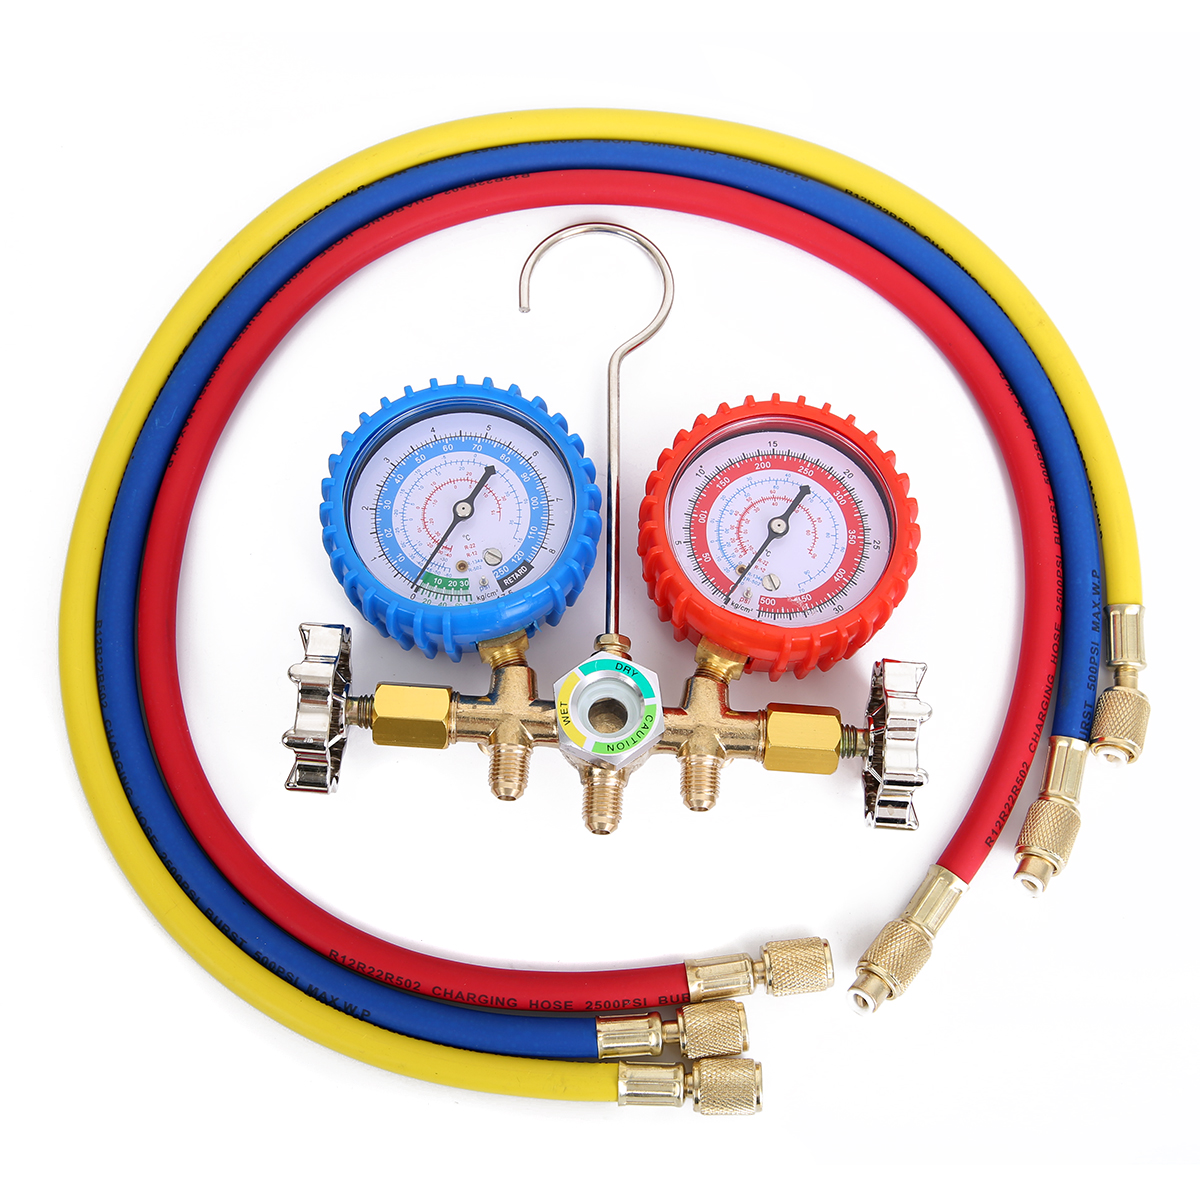 1pc Alloy Manifold Gauge Durable Pressure Gauges With Valve For Air Condition Refrigeration Maintenance by dhl 1pc digital manifold gauge vdg s1 digital refrigerant table pressure gauges dial diameter